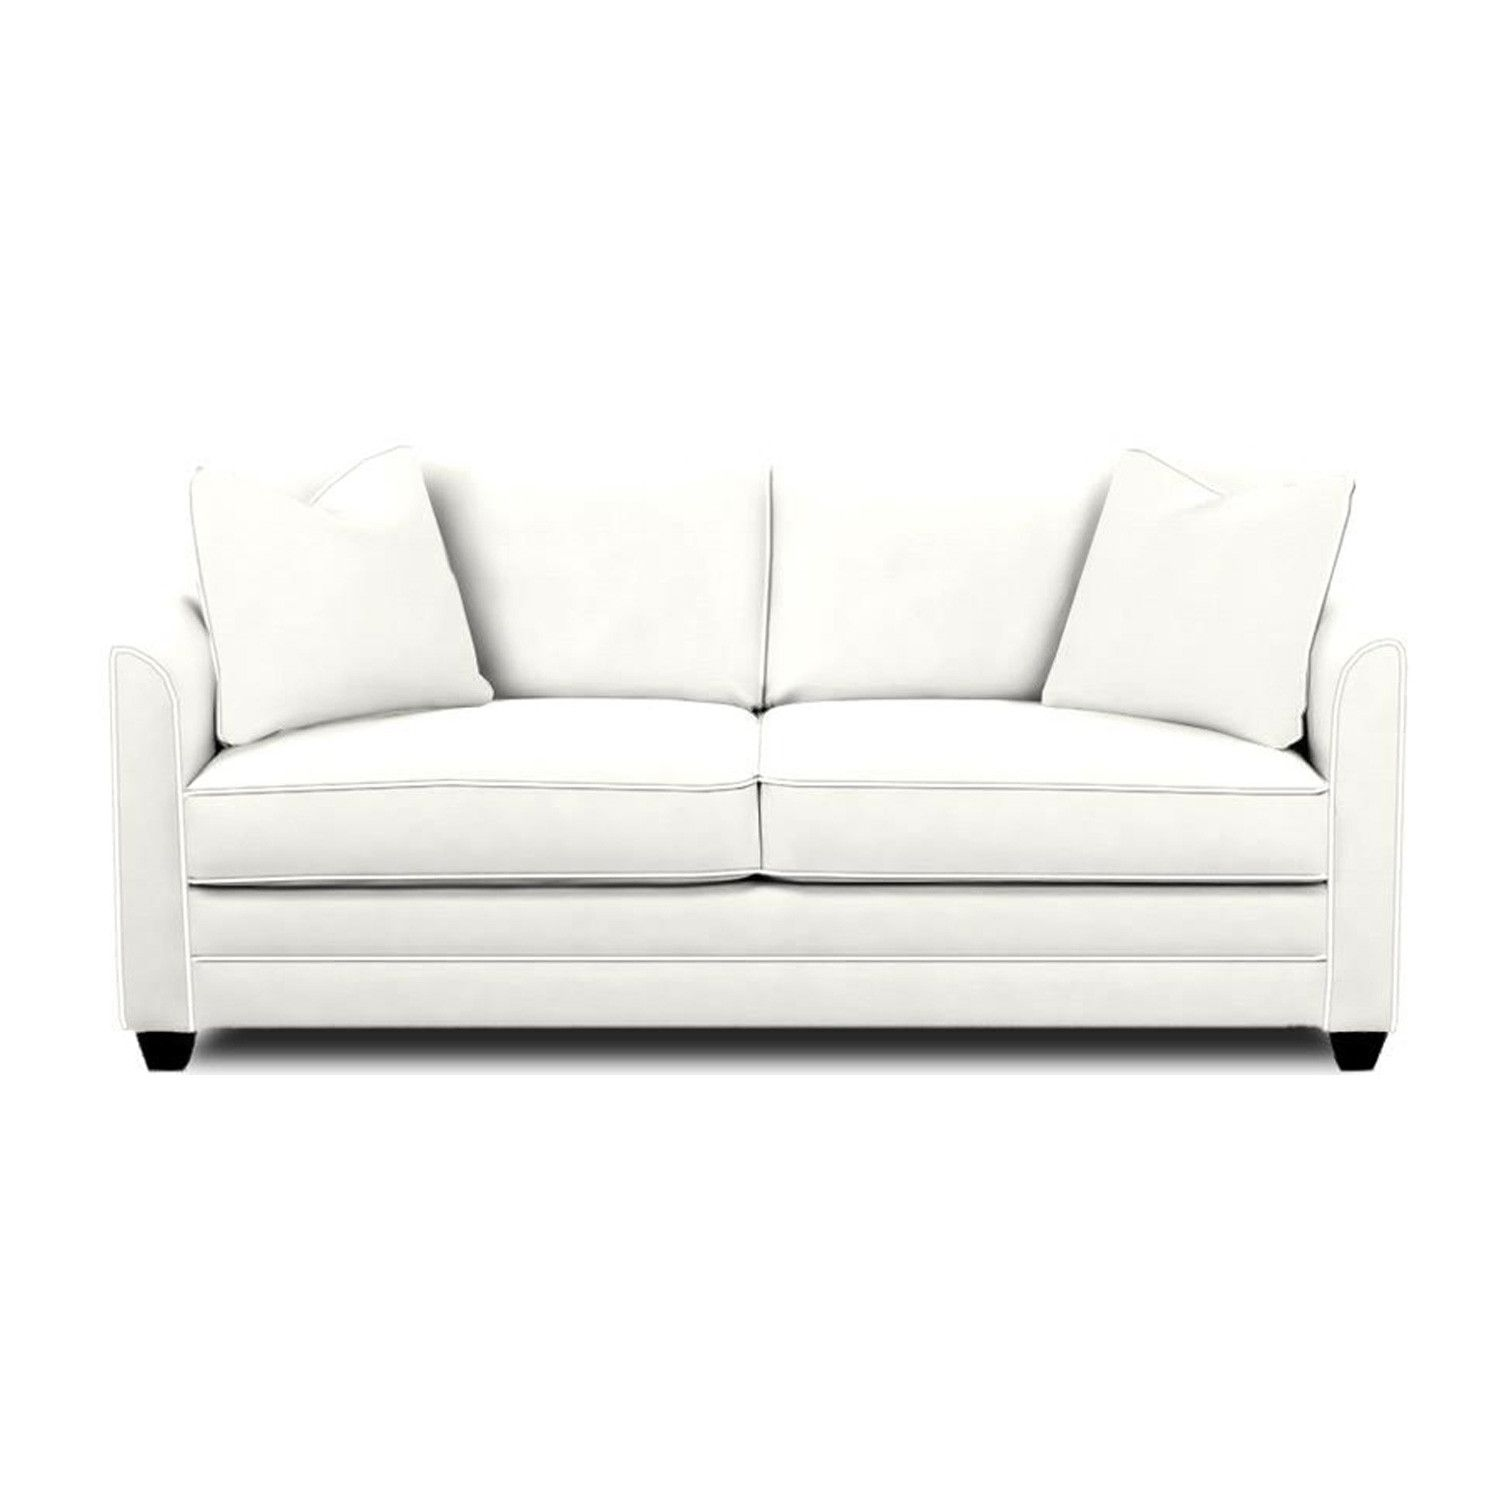 Cool Sarah Standard Sofa Products Sofa Sleeper Sofa Upholstery Alphanode Cool Chair Designs And Ideas Alphanodeonline